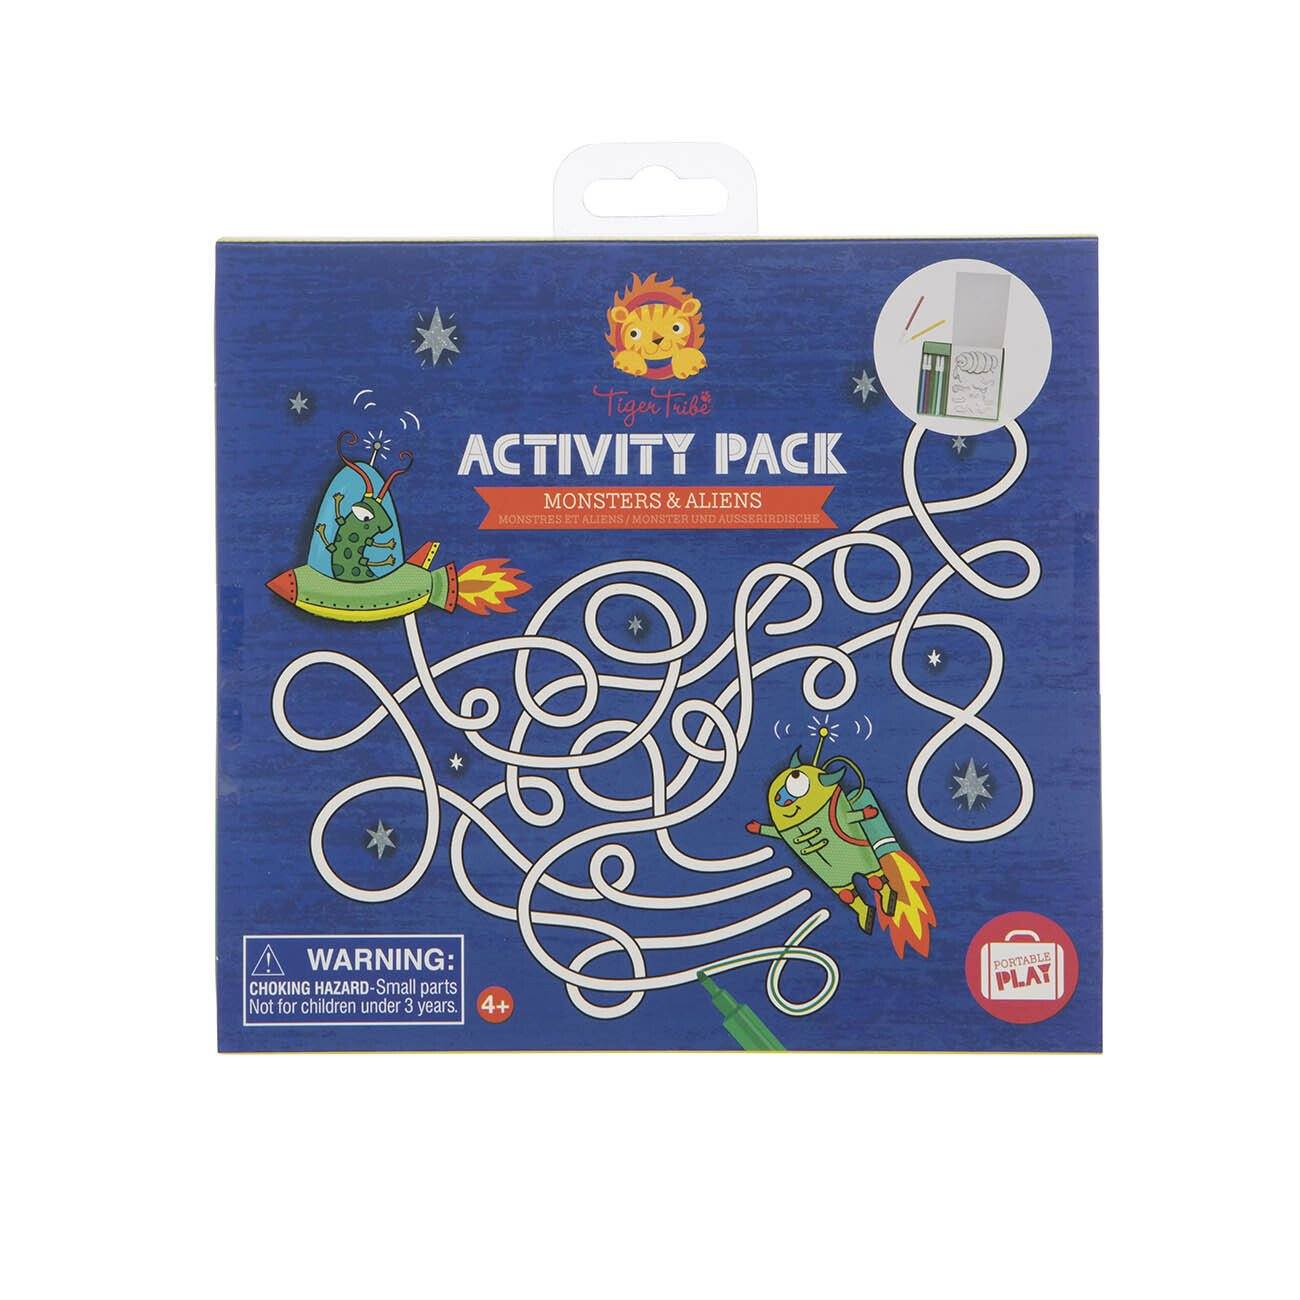 Activity Pack (Monsters & Aliens)